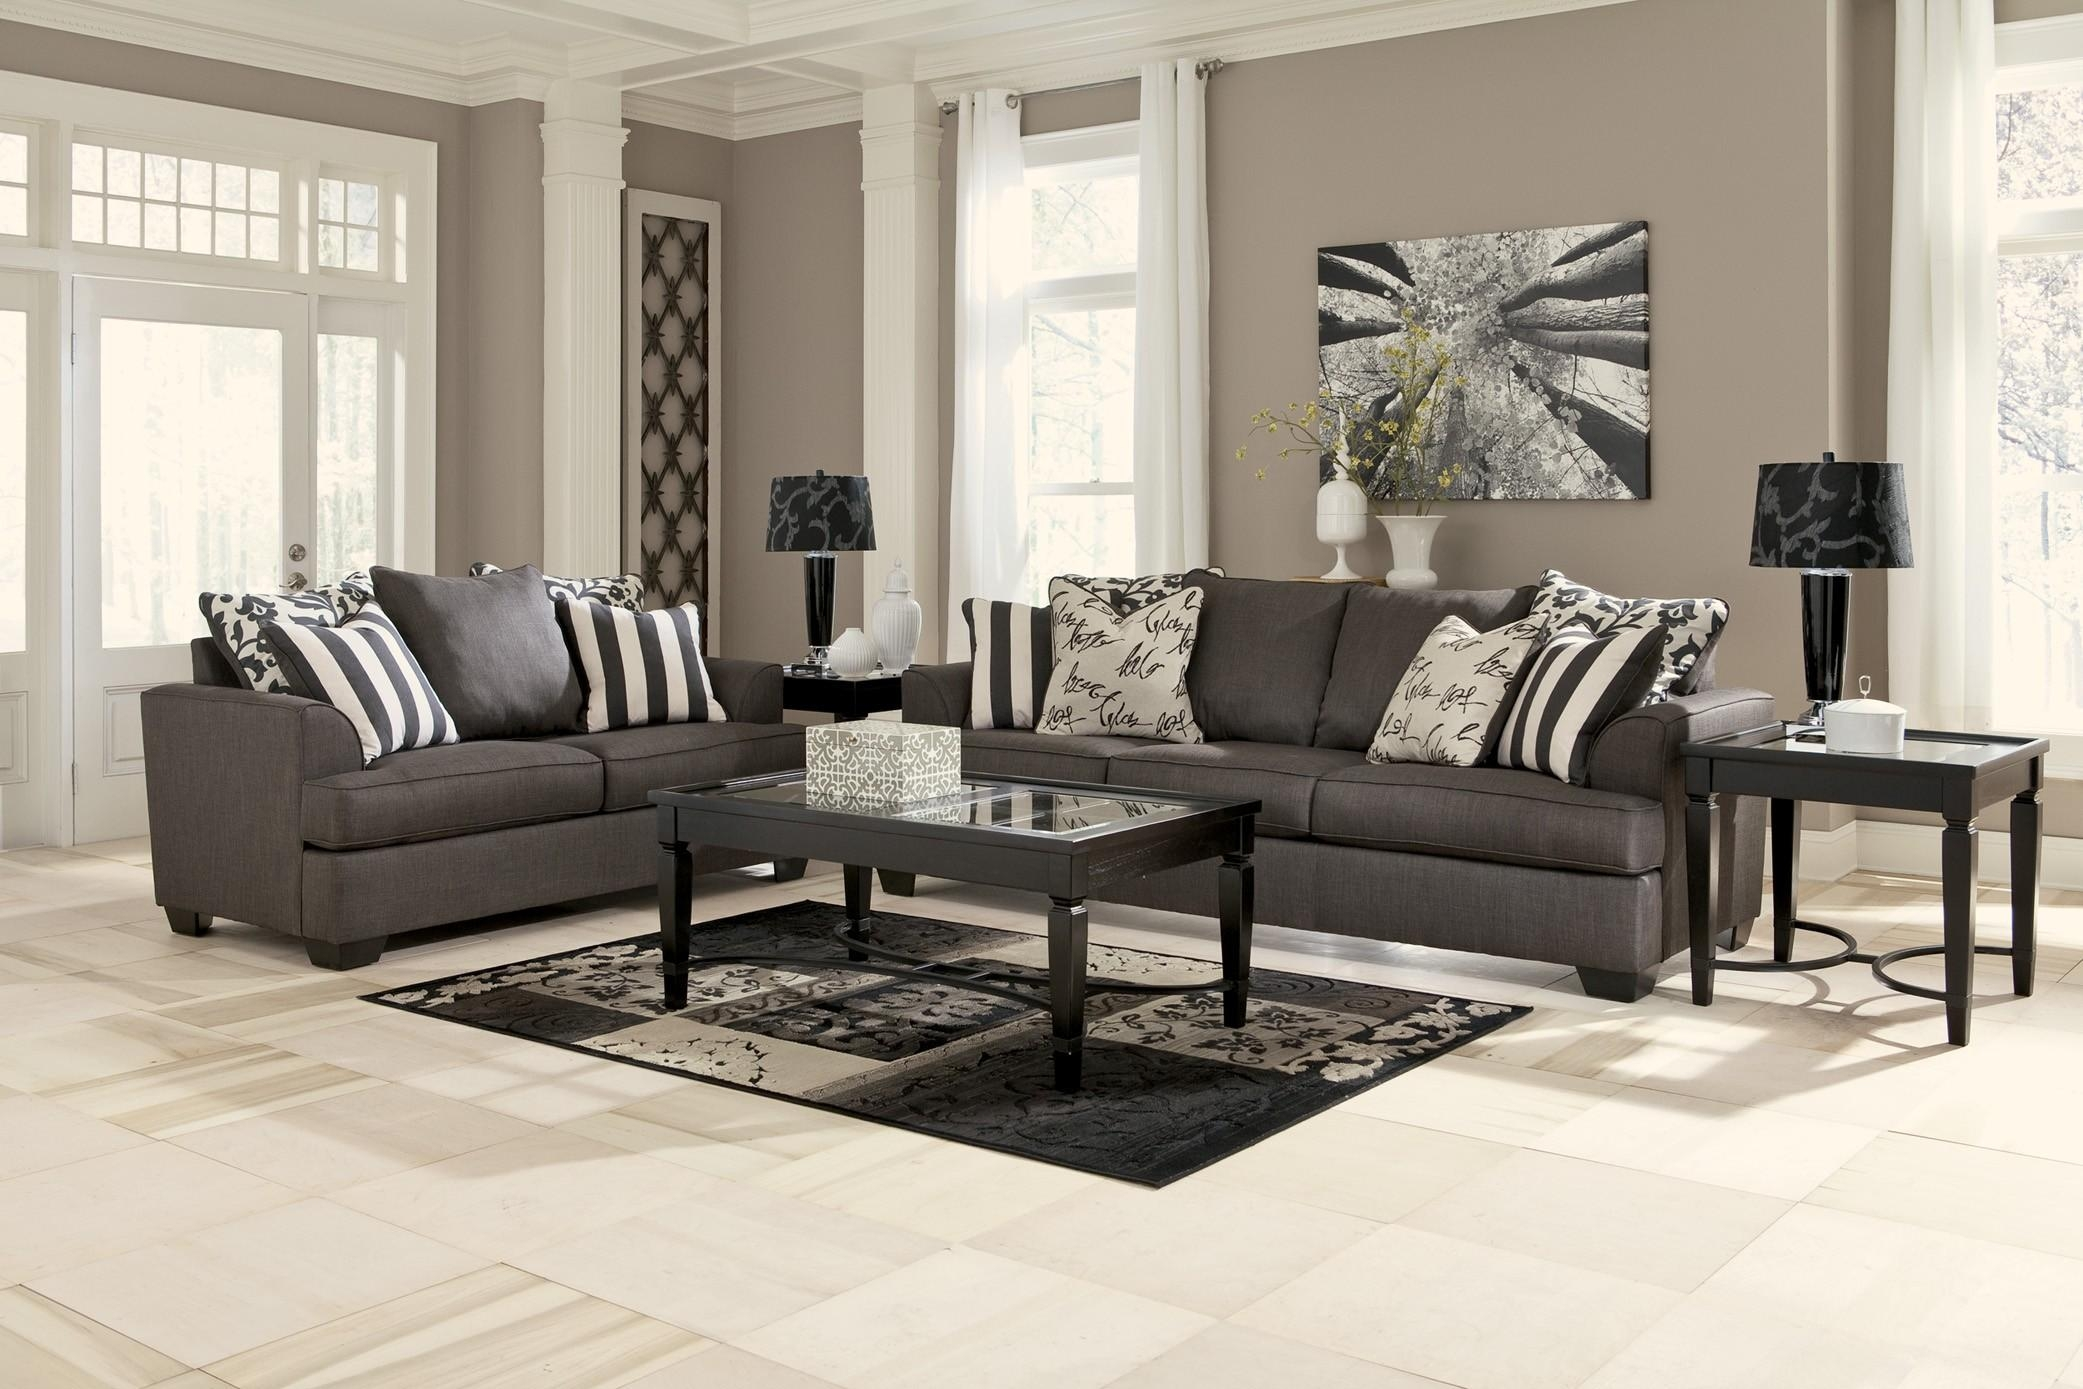 Charcoal Grey Sofa Living Room | Tehranmix Decoration Inside Charcoal Grey Sofas (Image 8 of 20)